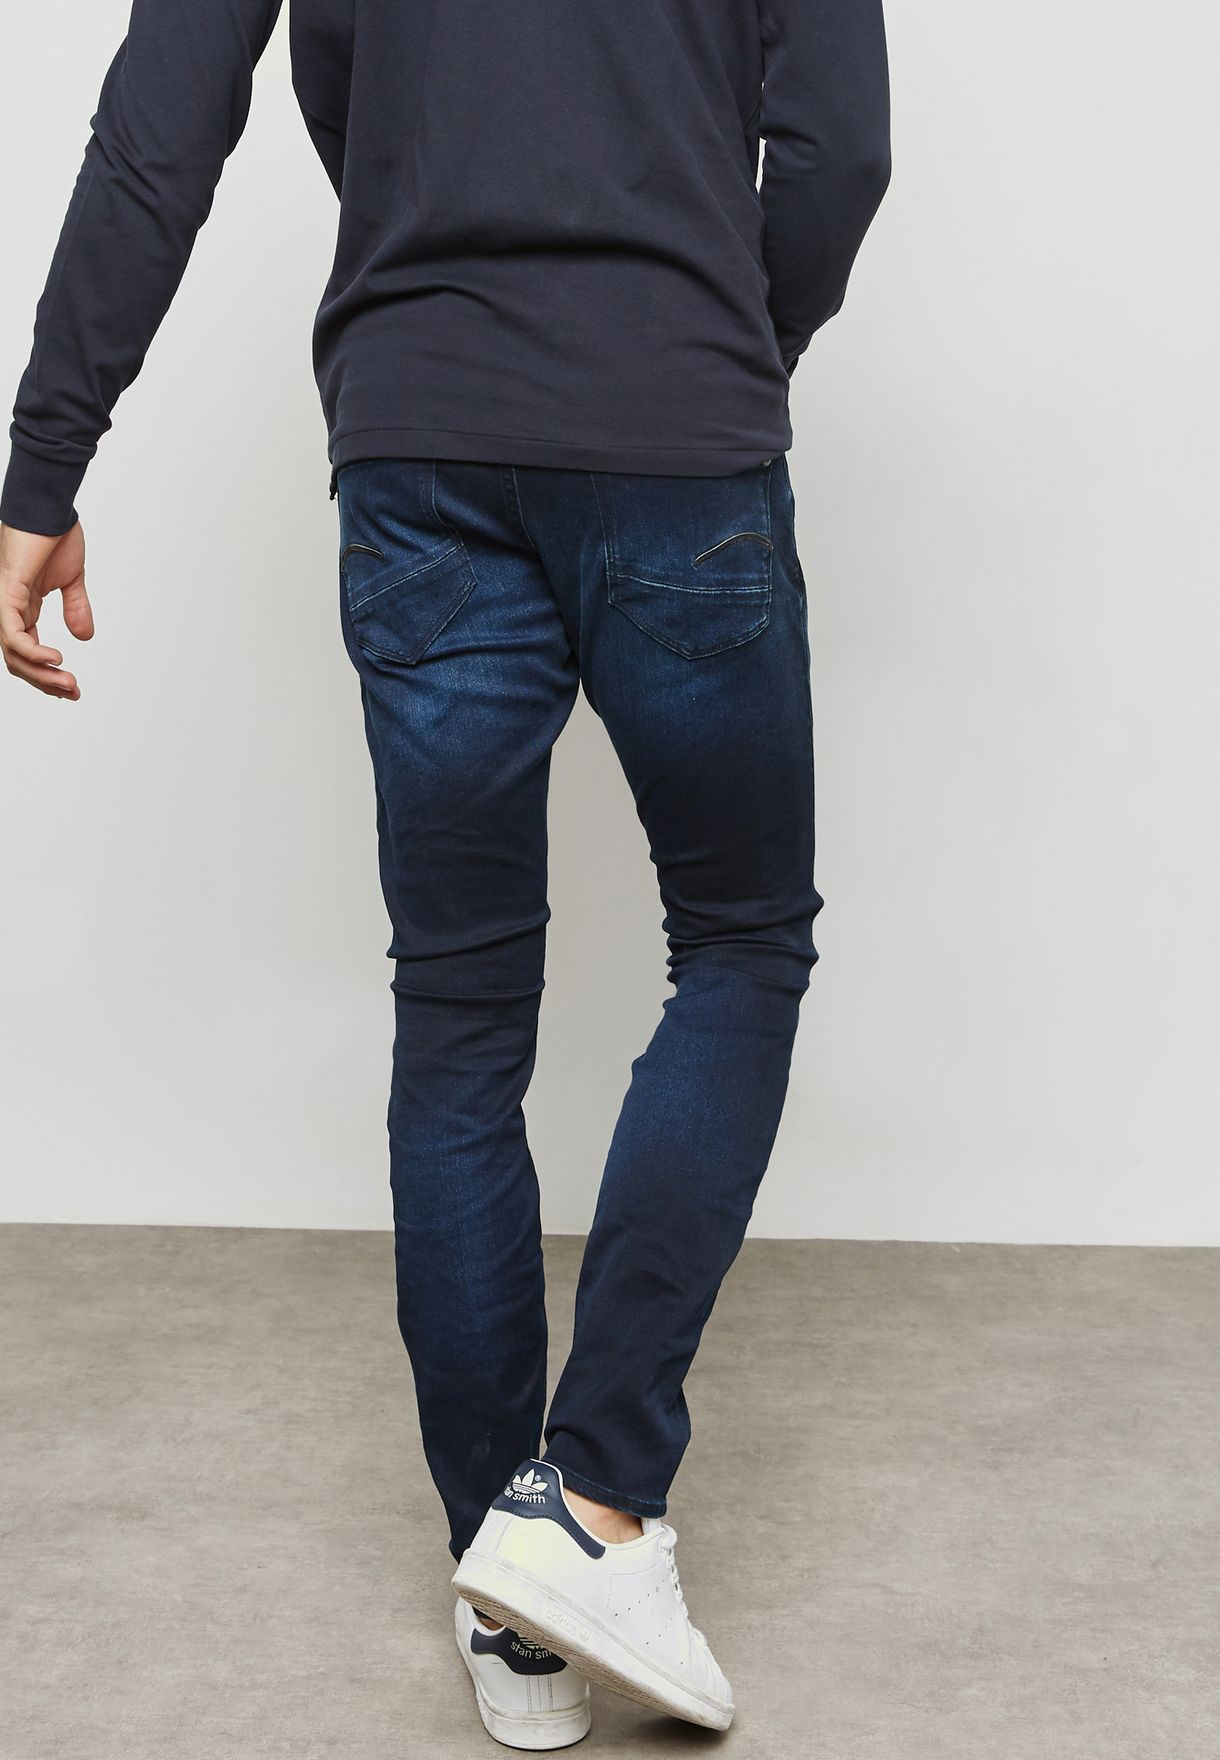 Slander Slim Fit Jeans